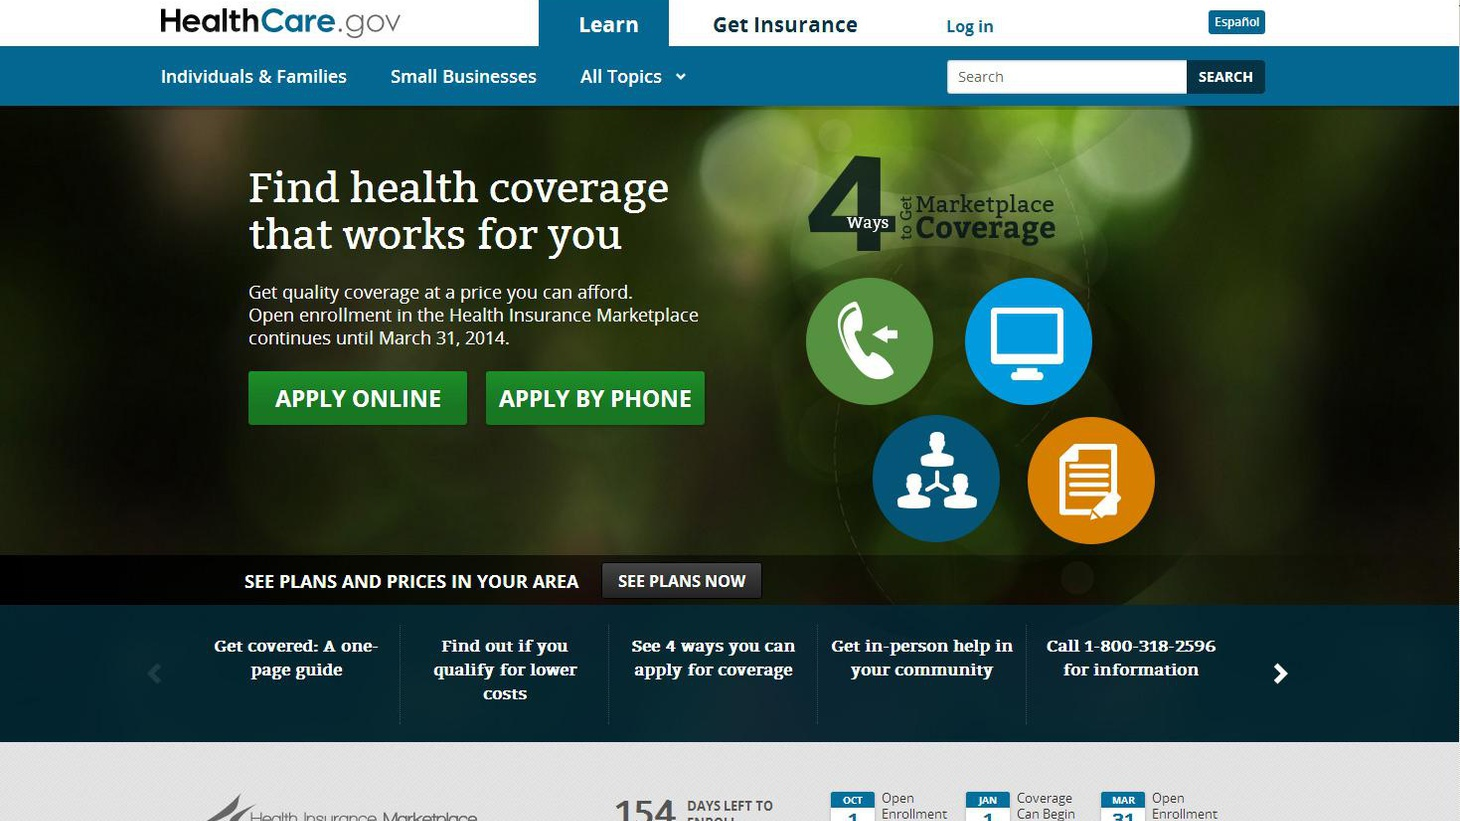 Healthcare.gov crashed again yesterday, despite promises to get the ACA site running smoothly. What's wrong? What could such problems mean for the rollout of Obamacare?